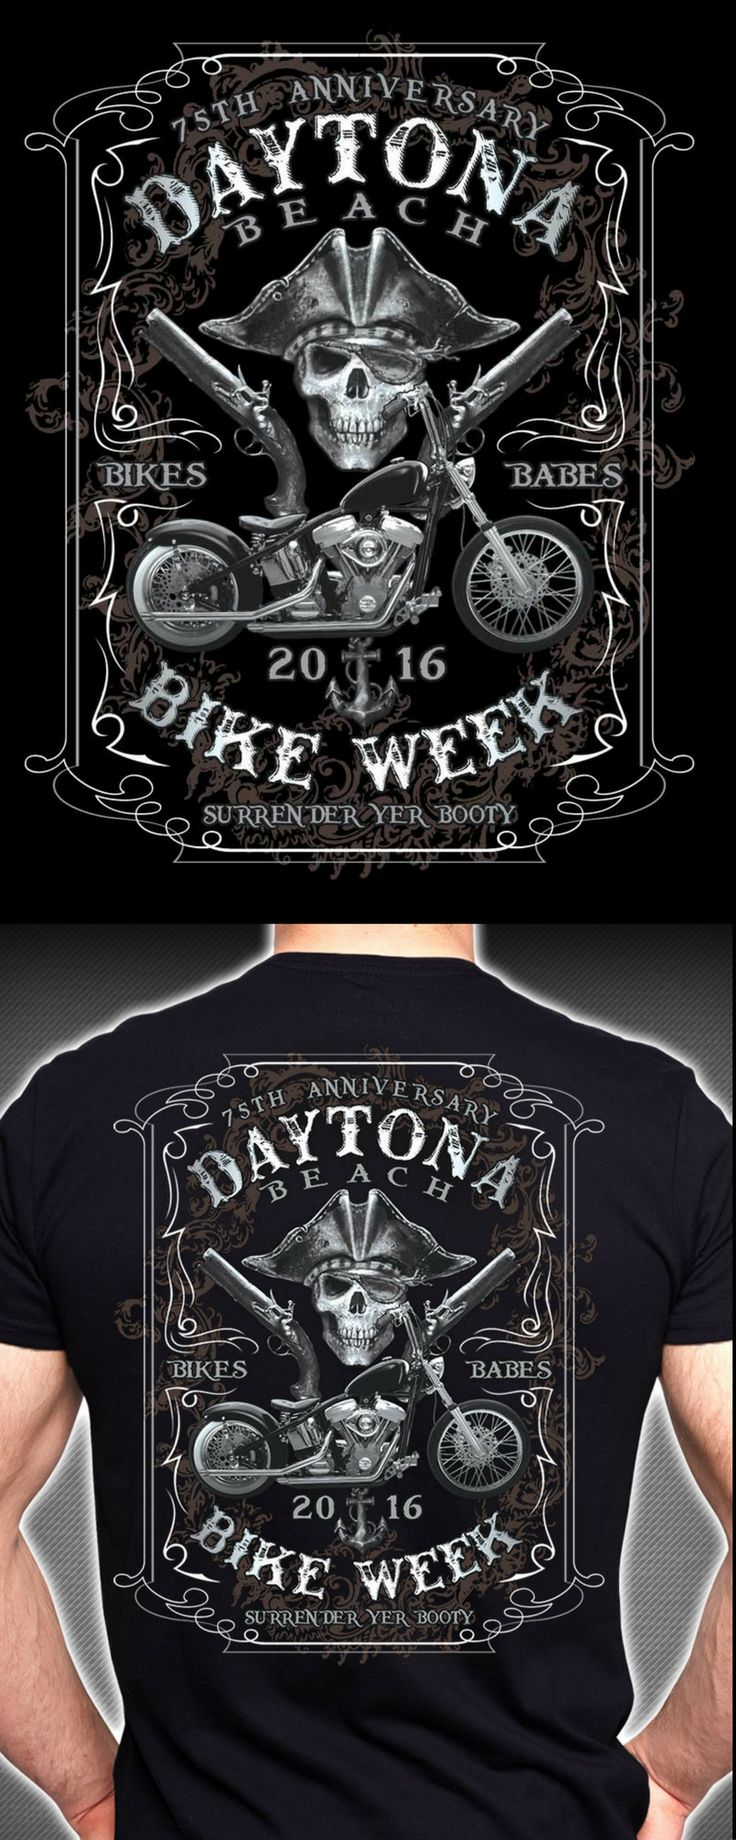 T shirt design quad cities - 2016 Daytona Beach Bike Week Pirate Skull Anniversary Collector S Edition Own A Piece Of History With This Anniversary Daytona Beach Bike Week Shirt Design